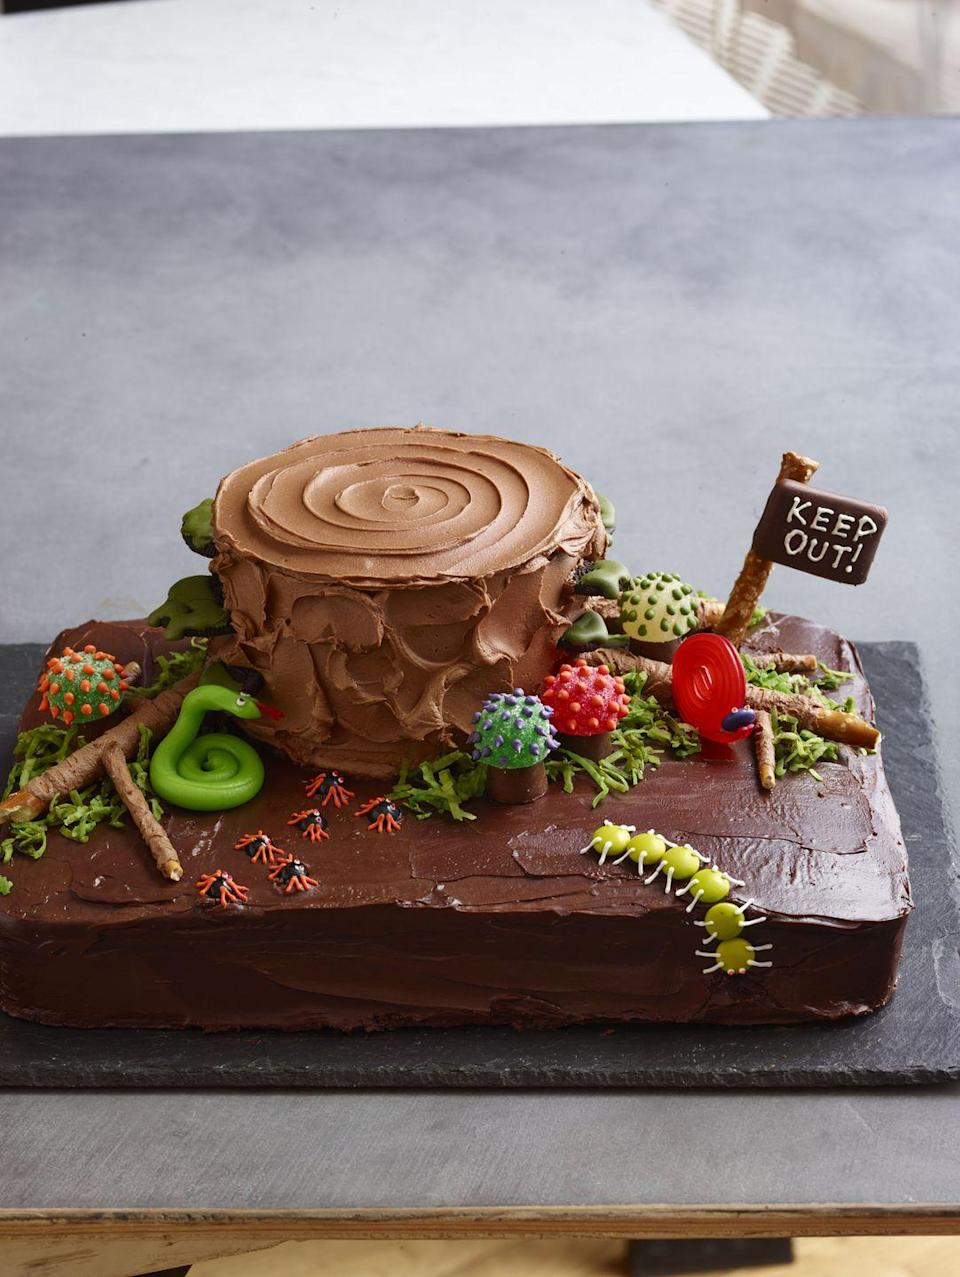 """<p>In an ideal world, all of the creepy crawly critters would actually be made of candy. That's what makes this chocolate cake a perfect Halloween treat.</p><p><em><a href=""""https://www.goodhousekeeping.com/food-recipes/a11583/chocolate-haunted-forest-cake-recipe-wdy1013/"""" rel=""""nofollow noopener"""" target=""""_blank"""" data-ylk=""""slk:Get the recipe for Chocolate Haunted Forest Cake »"""" class=""""link rapid-noclick-resp"""">Get the recipe for Chocolate Haunted Forest Cake »</a></em></p><p><strong>RELATED: </strong><a href=""""https://www.goodhousekeeping.com/food-recipes/dessert/g32305125/easy-chocolate-desserts/"""" rel=""""nofollow noopener"""" target=""""_blank"""" data-ylk=""""slk:25 Easy and Creative Chocolate Desserts That You Haven't Tried Yet"""" class=""""link rapid-noclick-resp"""">25 Easy and Creative Chocolate Desserts That You Haven't Tried Yet</a></p>"""